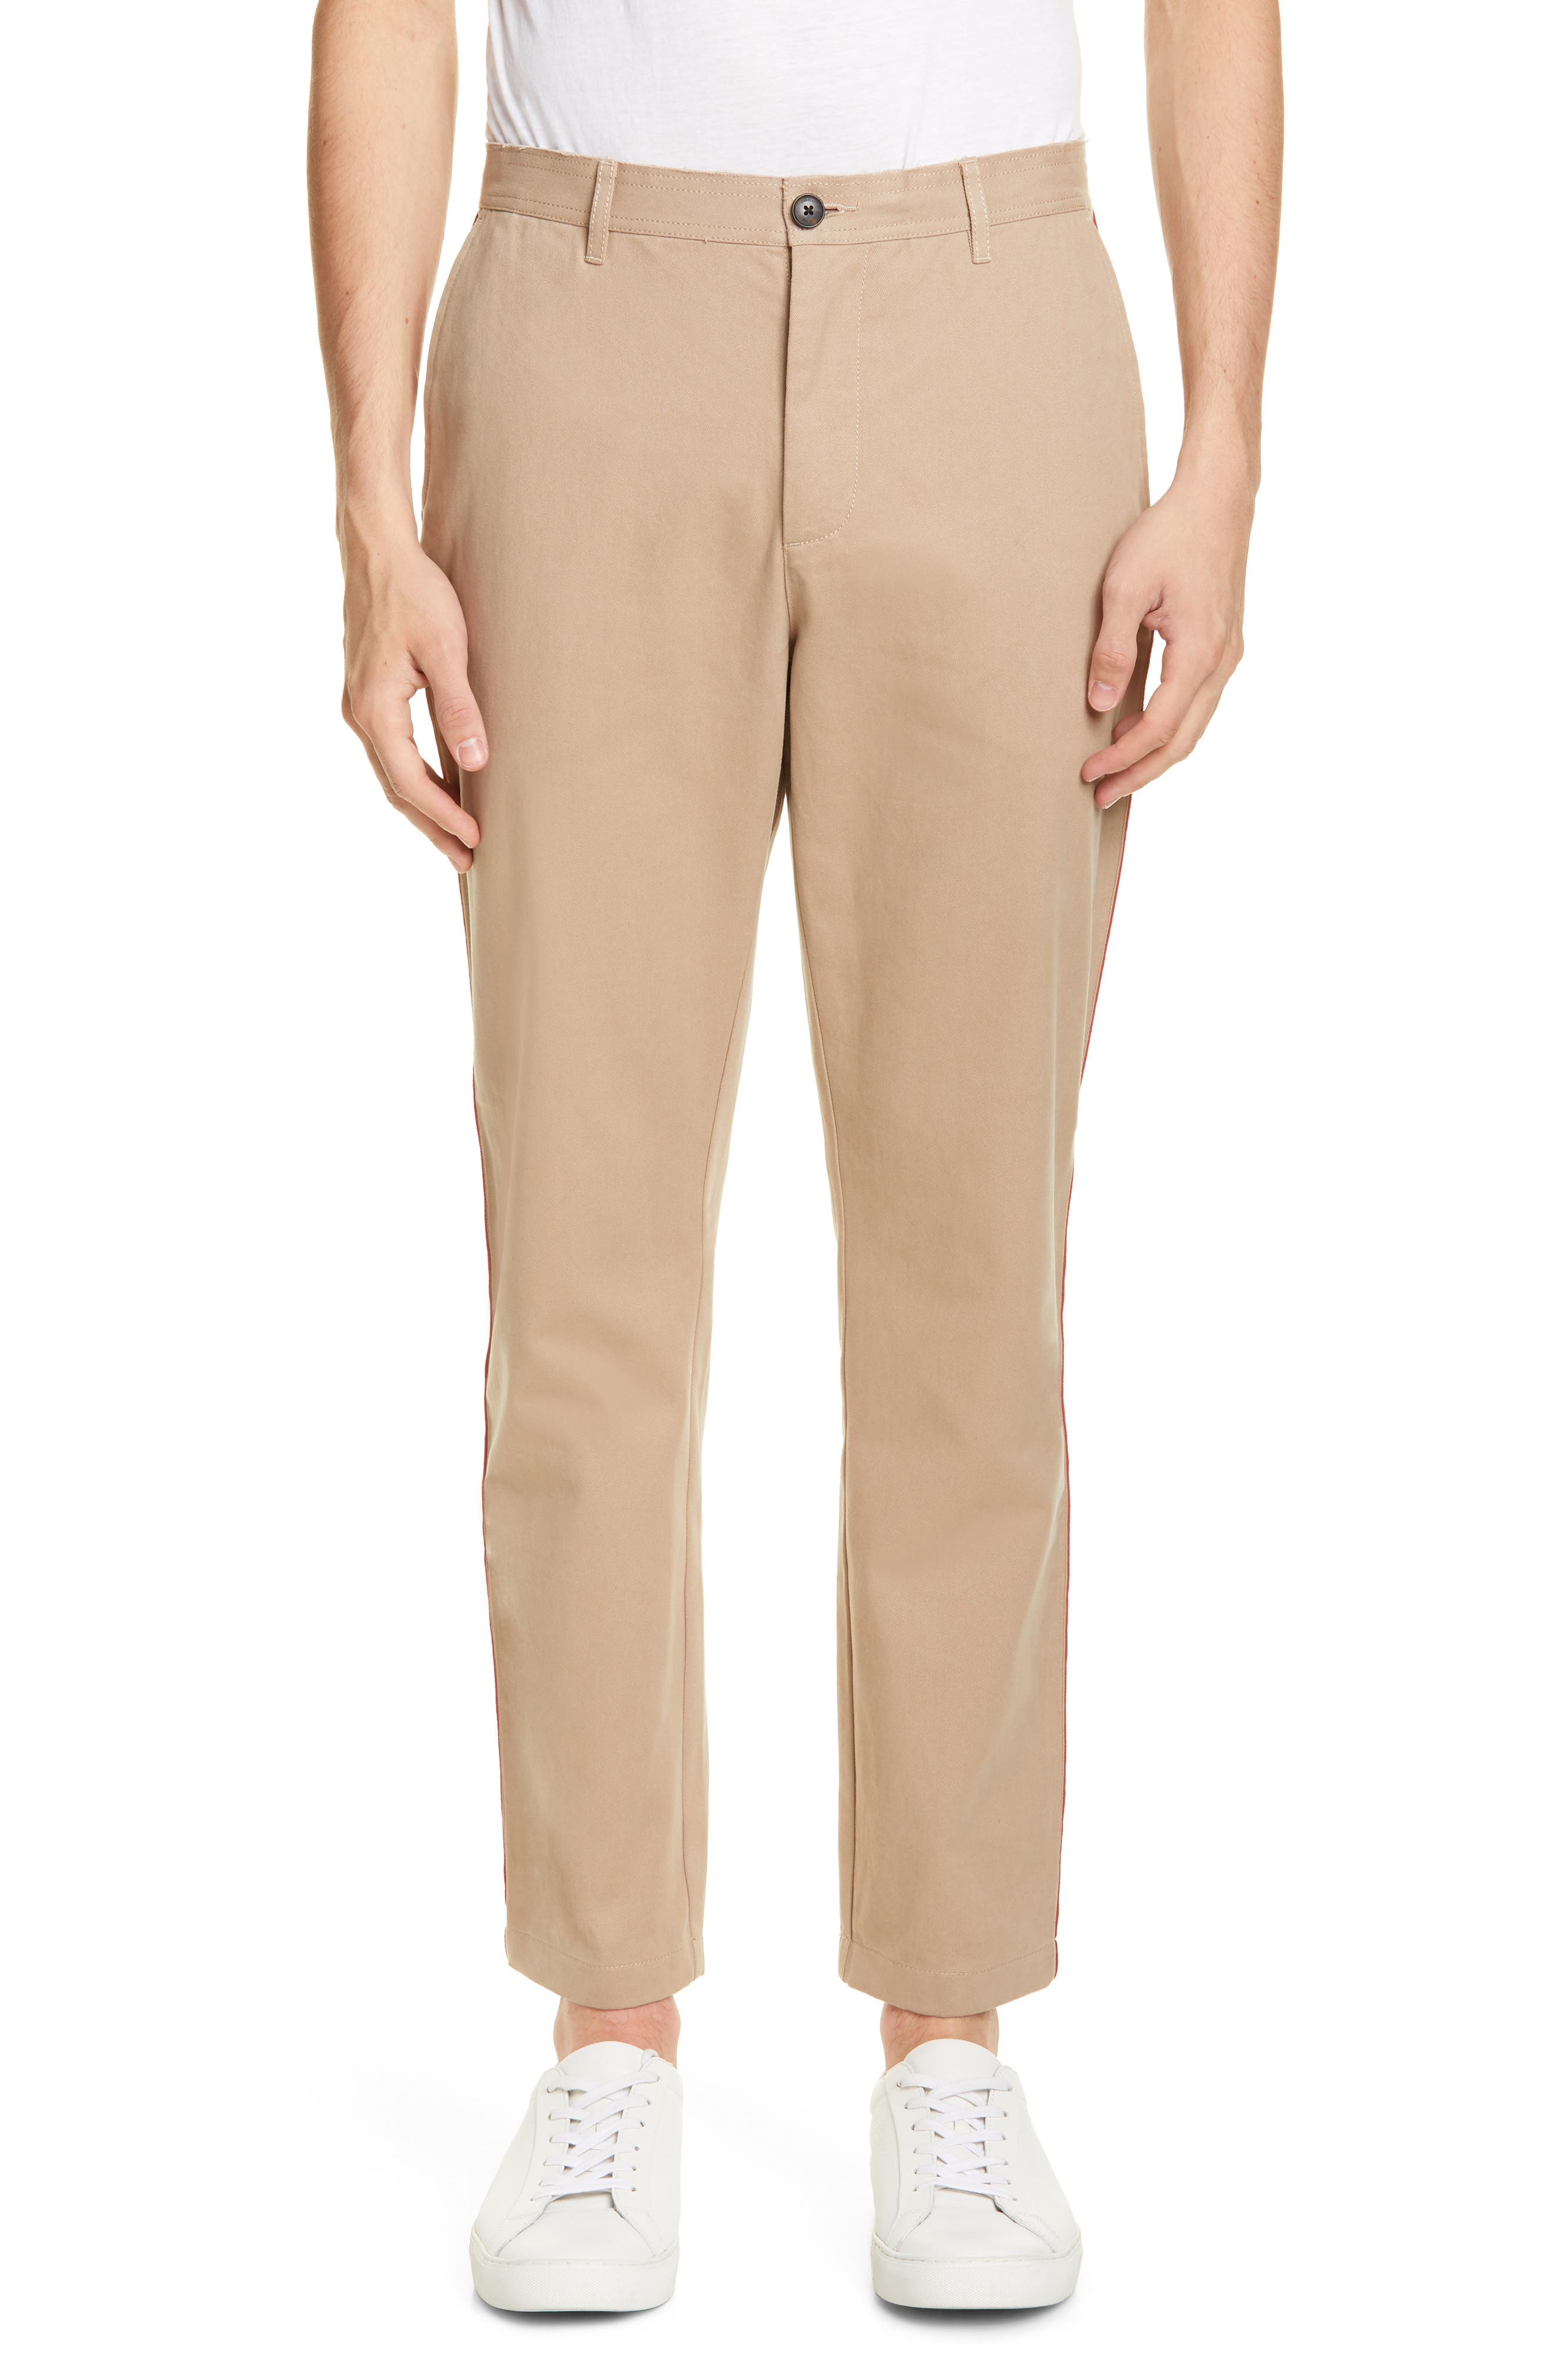 Image of OVADIA AND SONS Chino Track Pants